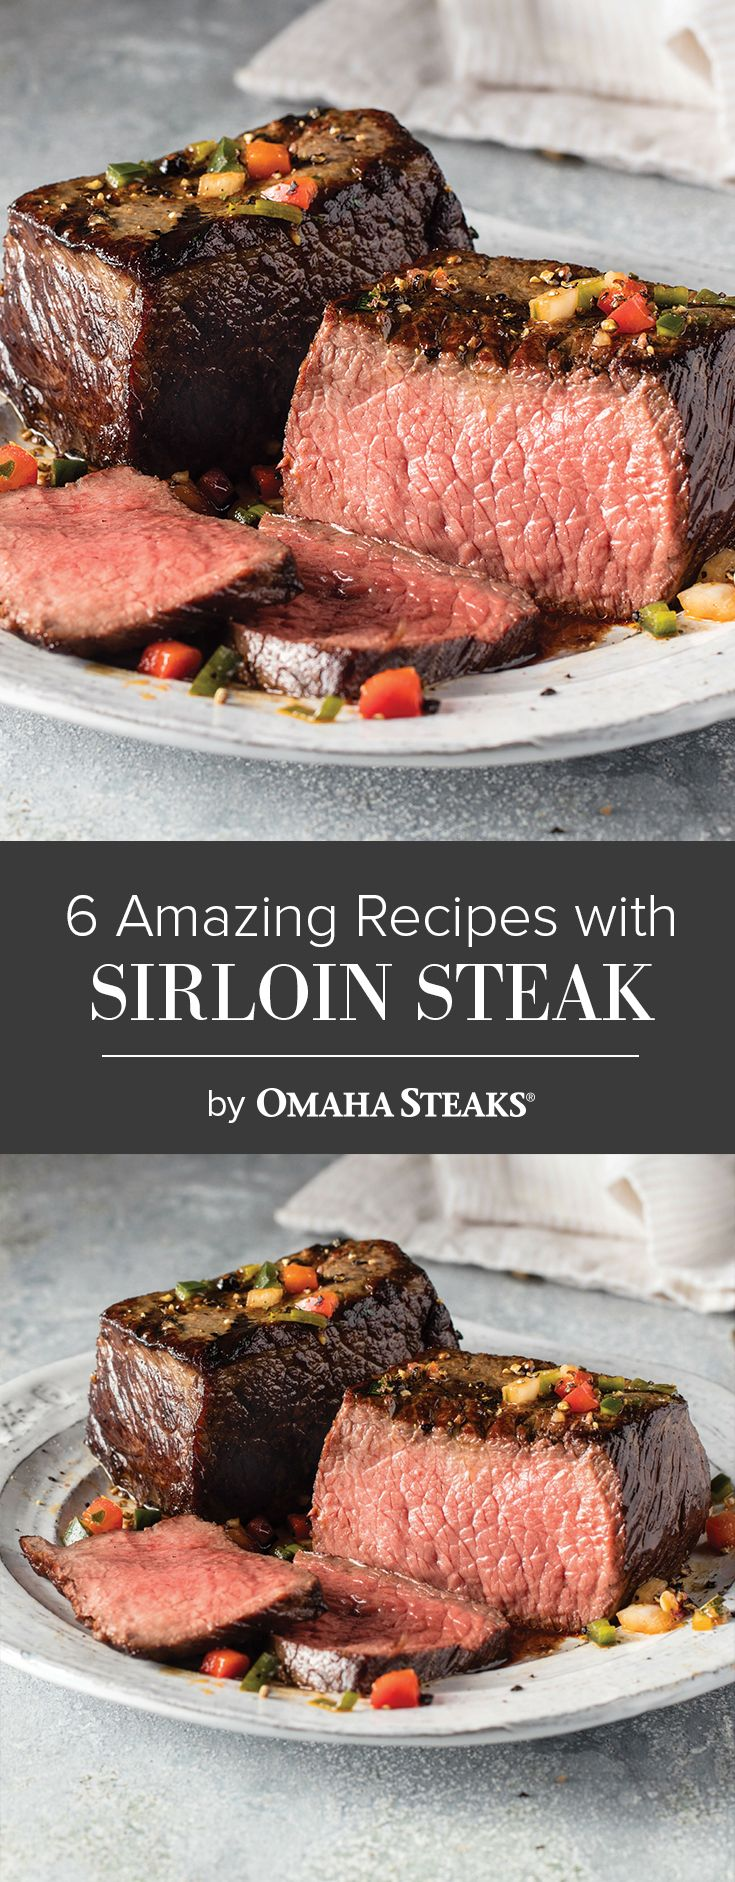 These Top Sirloin Recipes Are Everything!